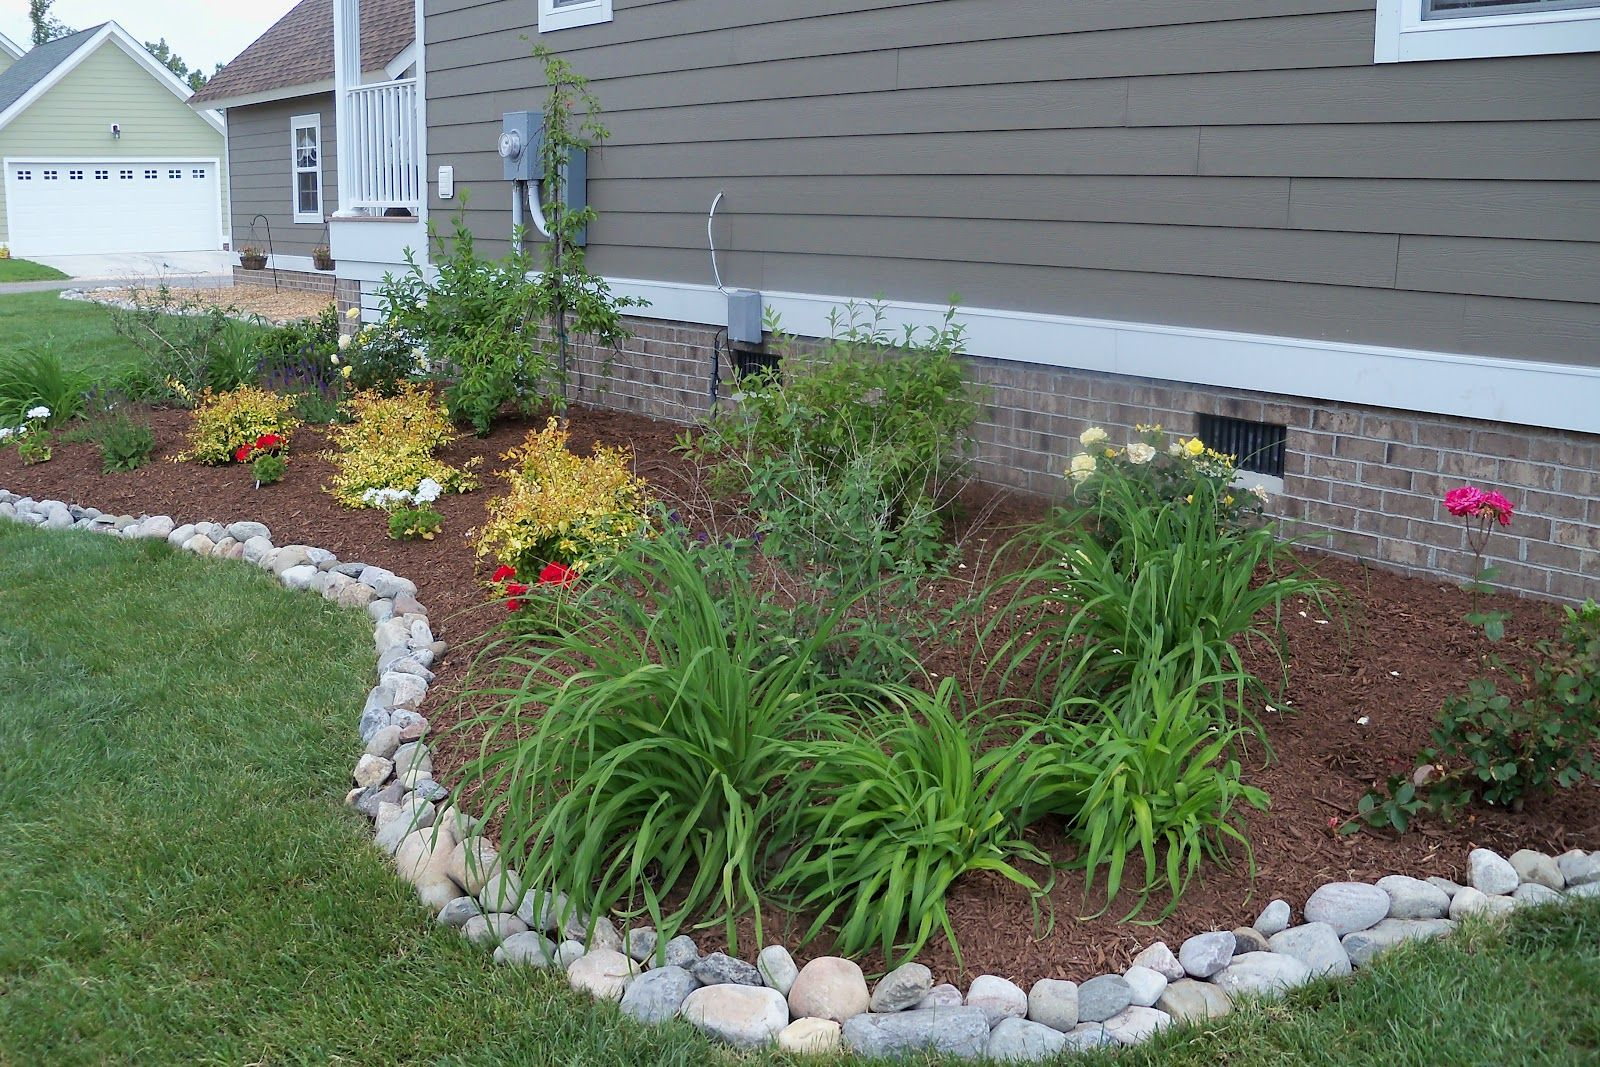 Landscaping Stones Mix And Match Stone Shapes And Colors For A